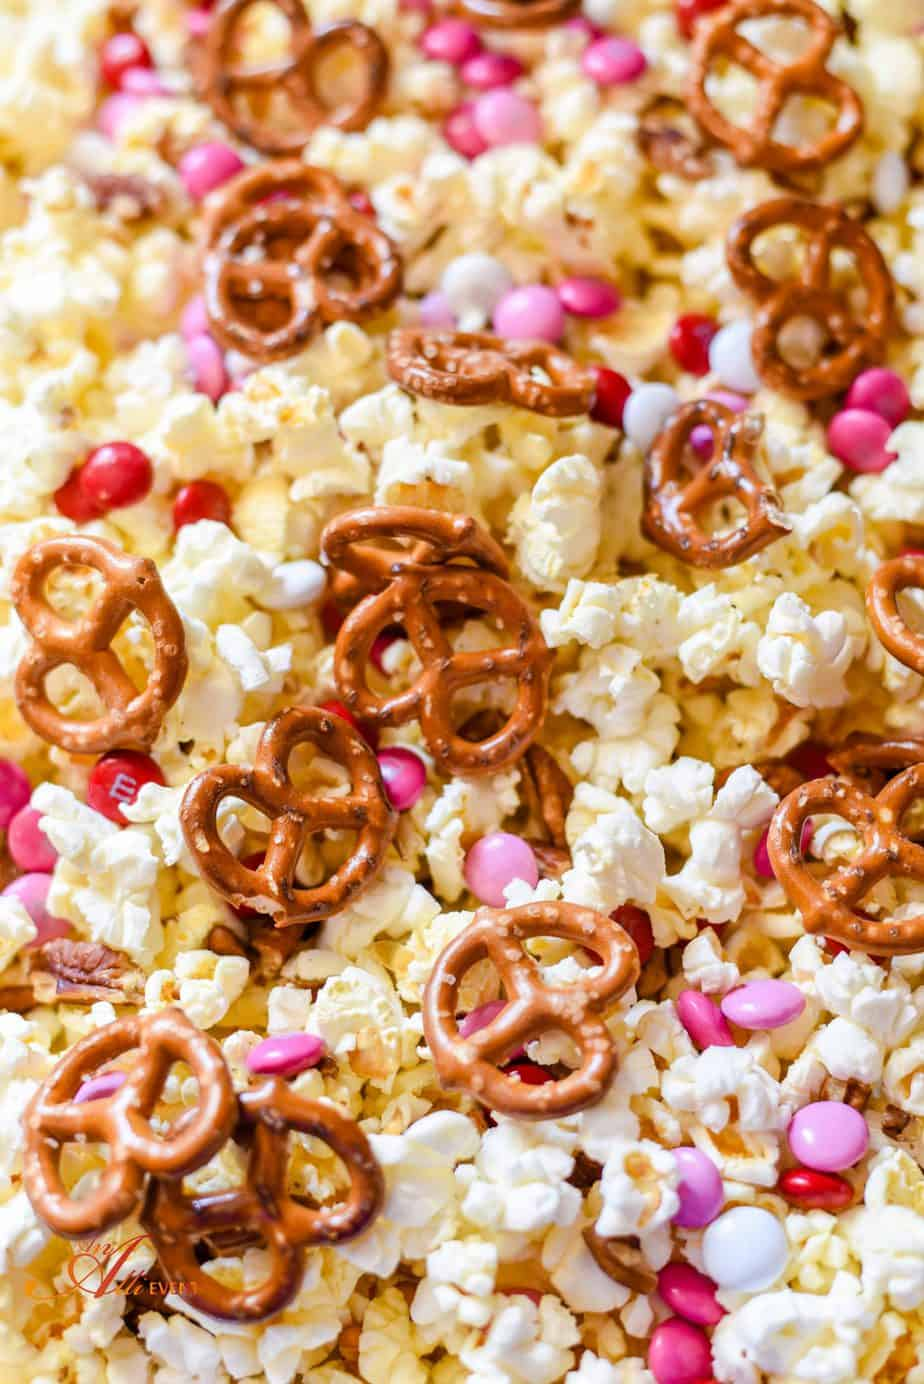 White Chocolate Covered Popcorn With Pecans And Pretzels